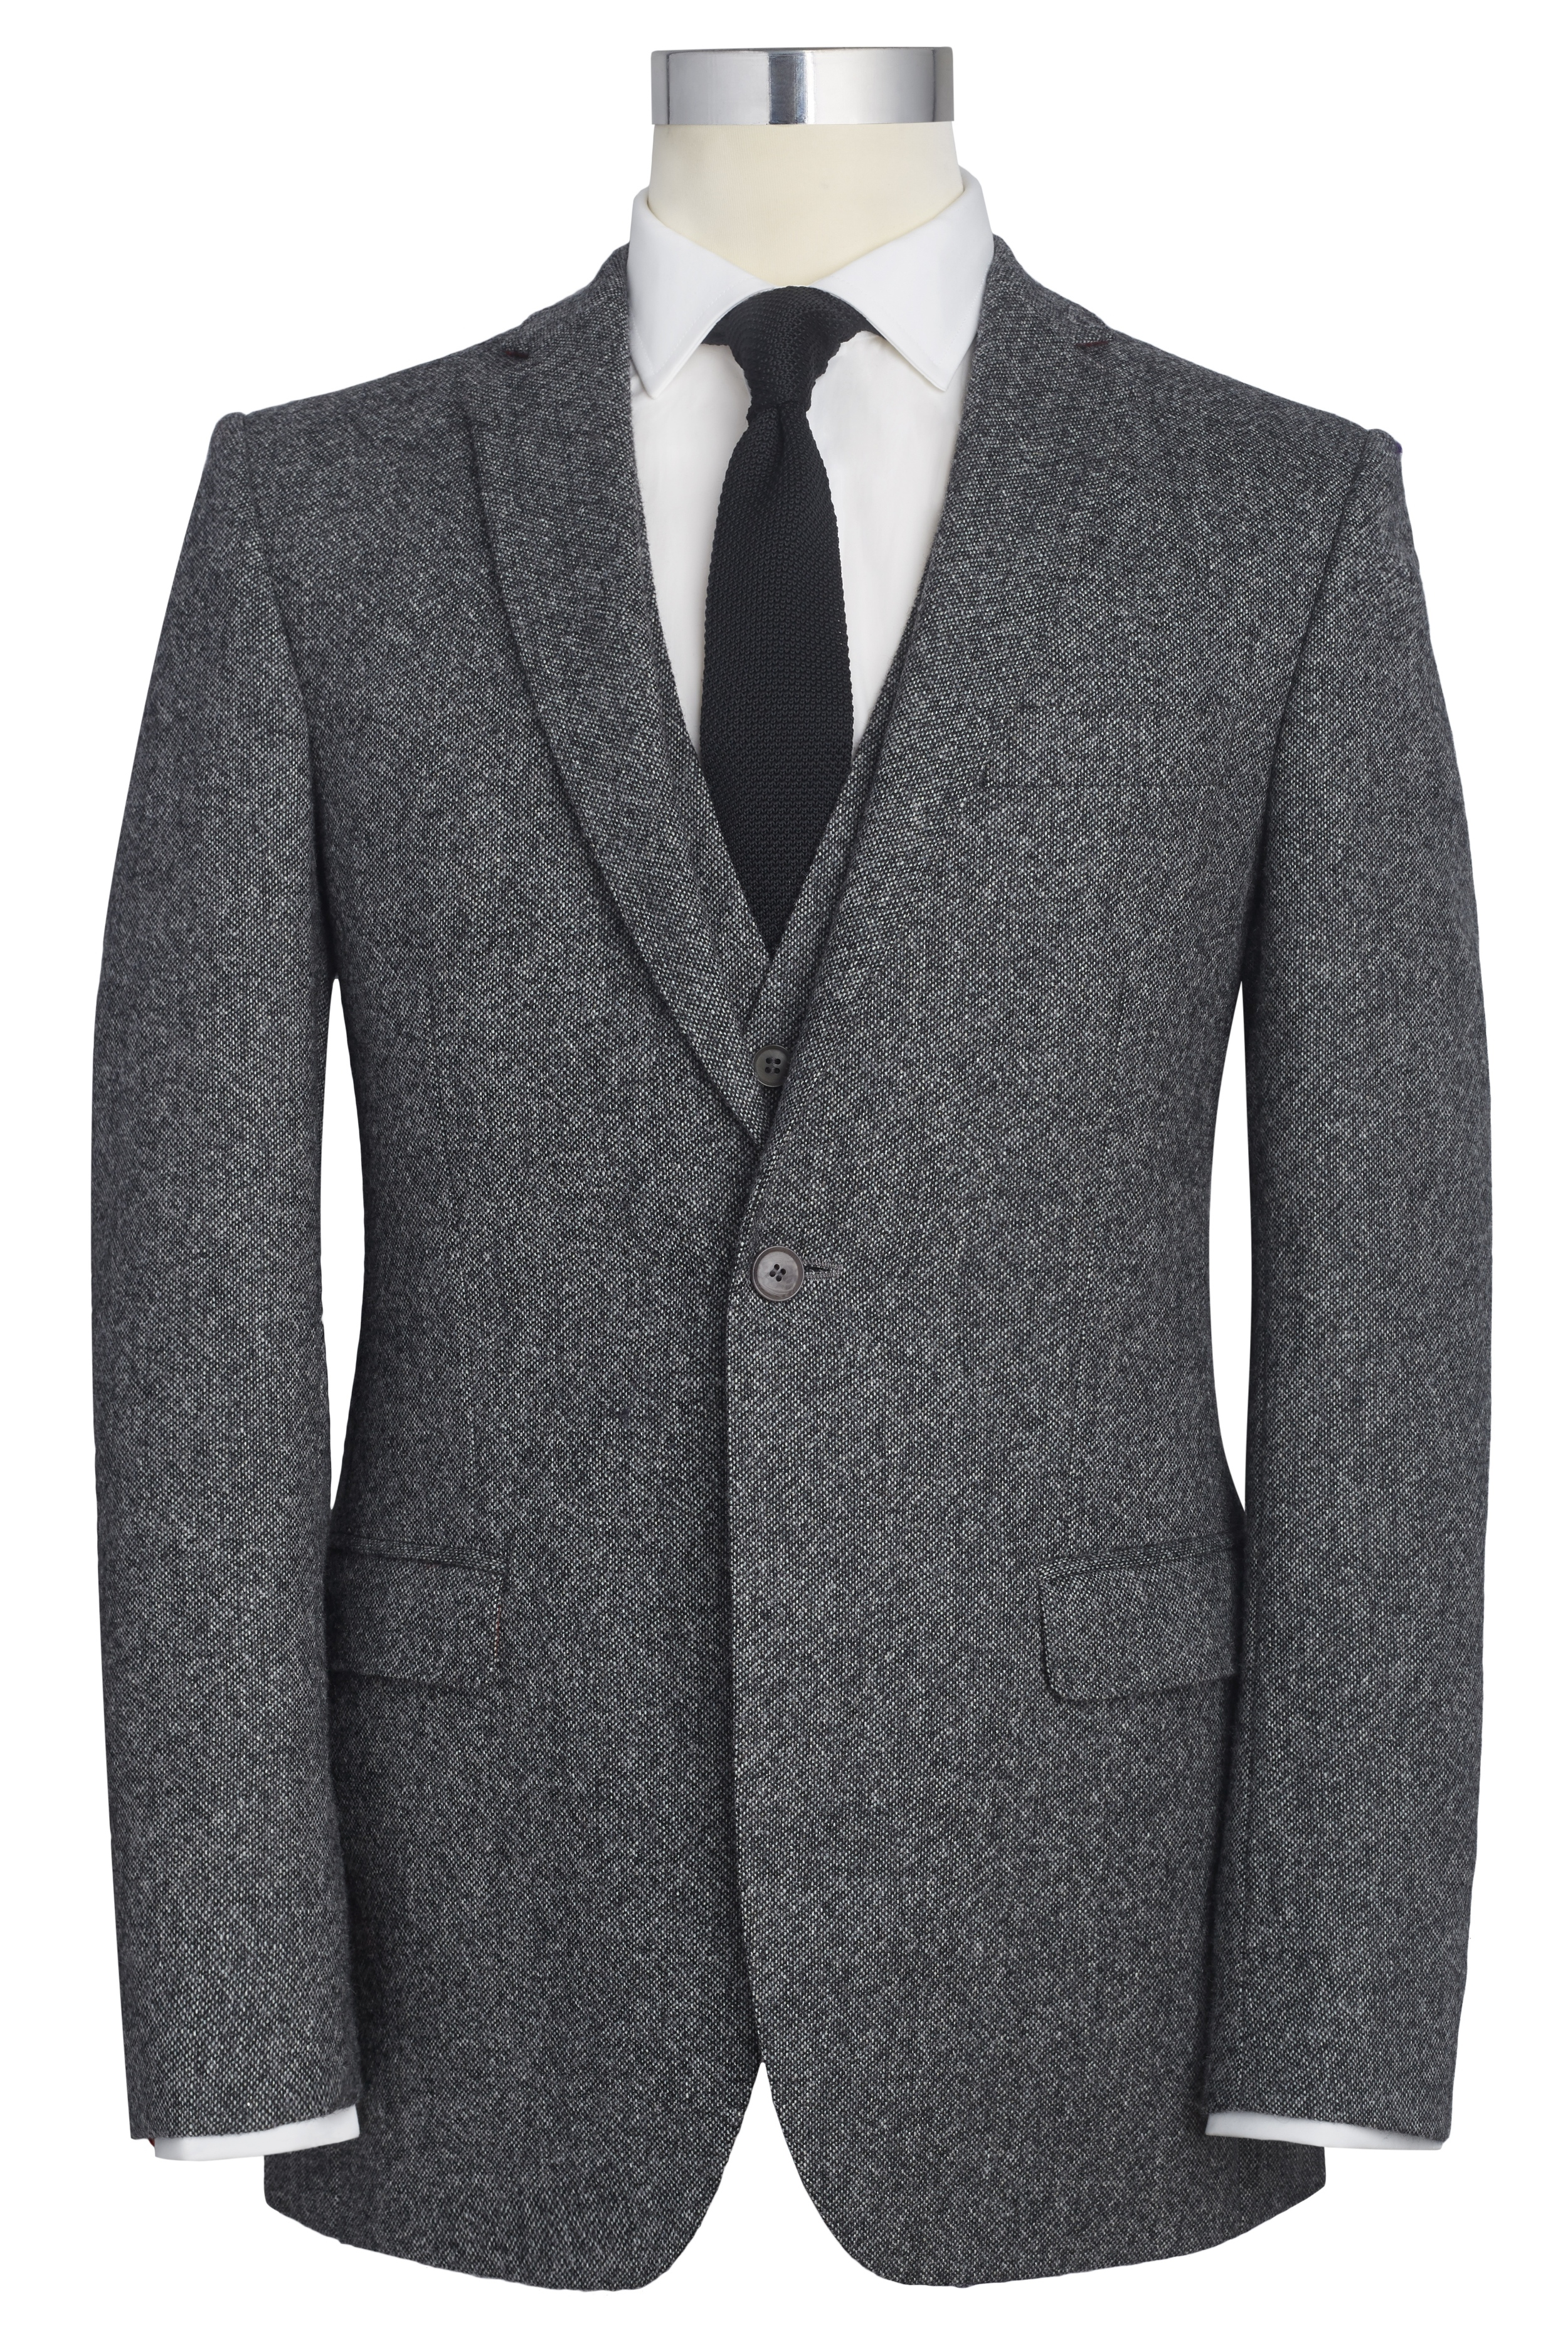 SUIT GALLERY